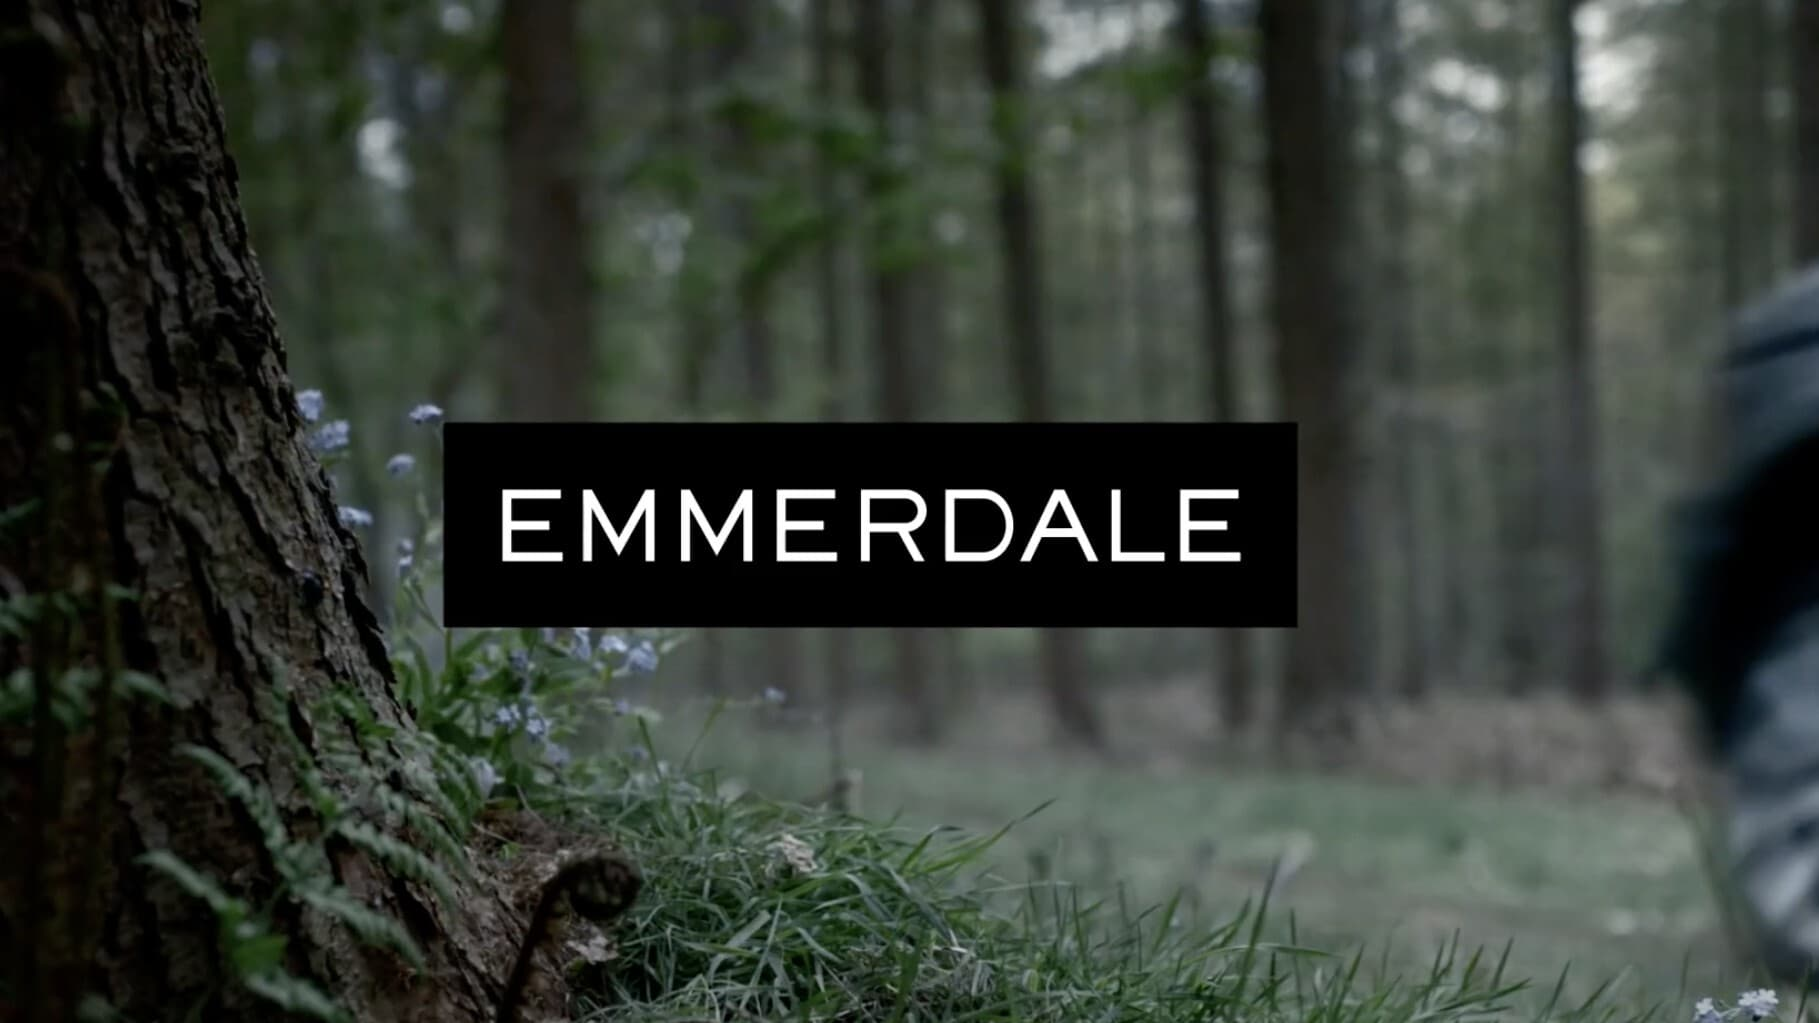 Emmerdale - Season 46 Episode 178 : Tuesday 16th July 2019 (Part 1)